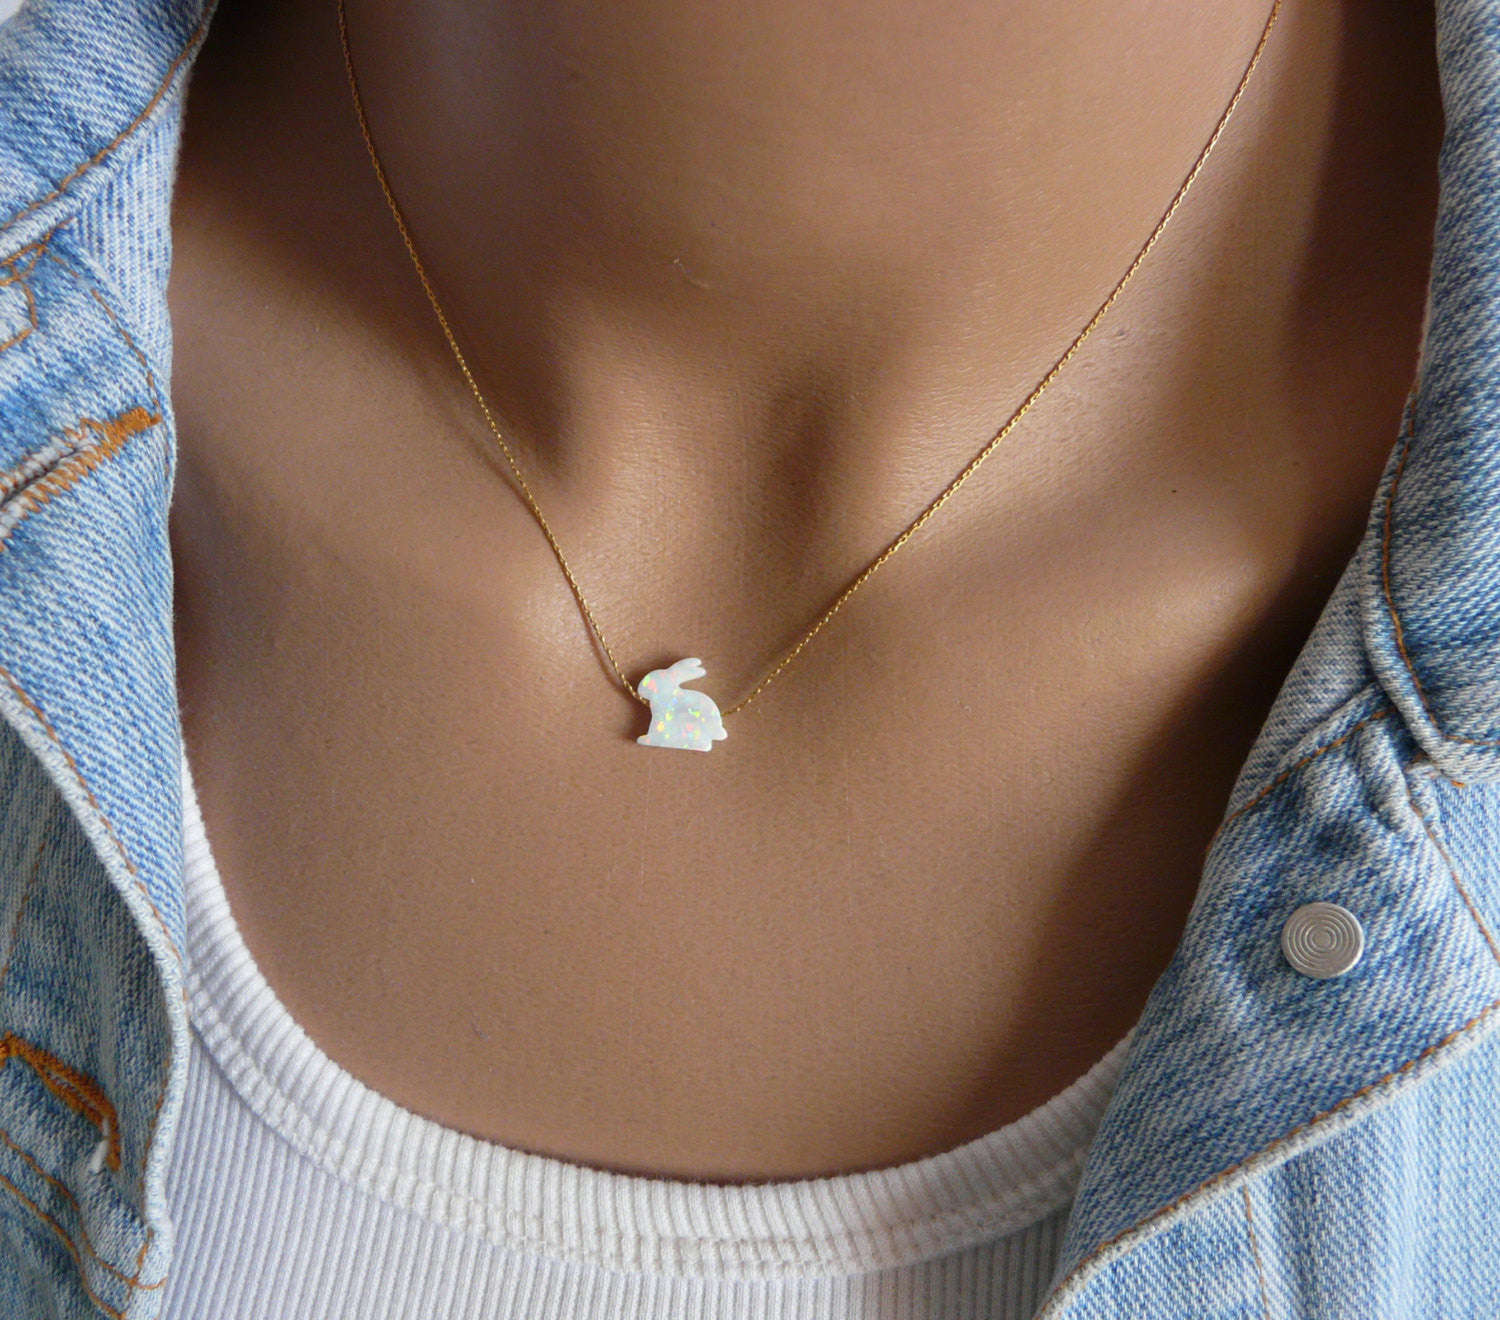 Rabbit necklace - OpaLandJewelry